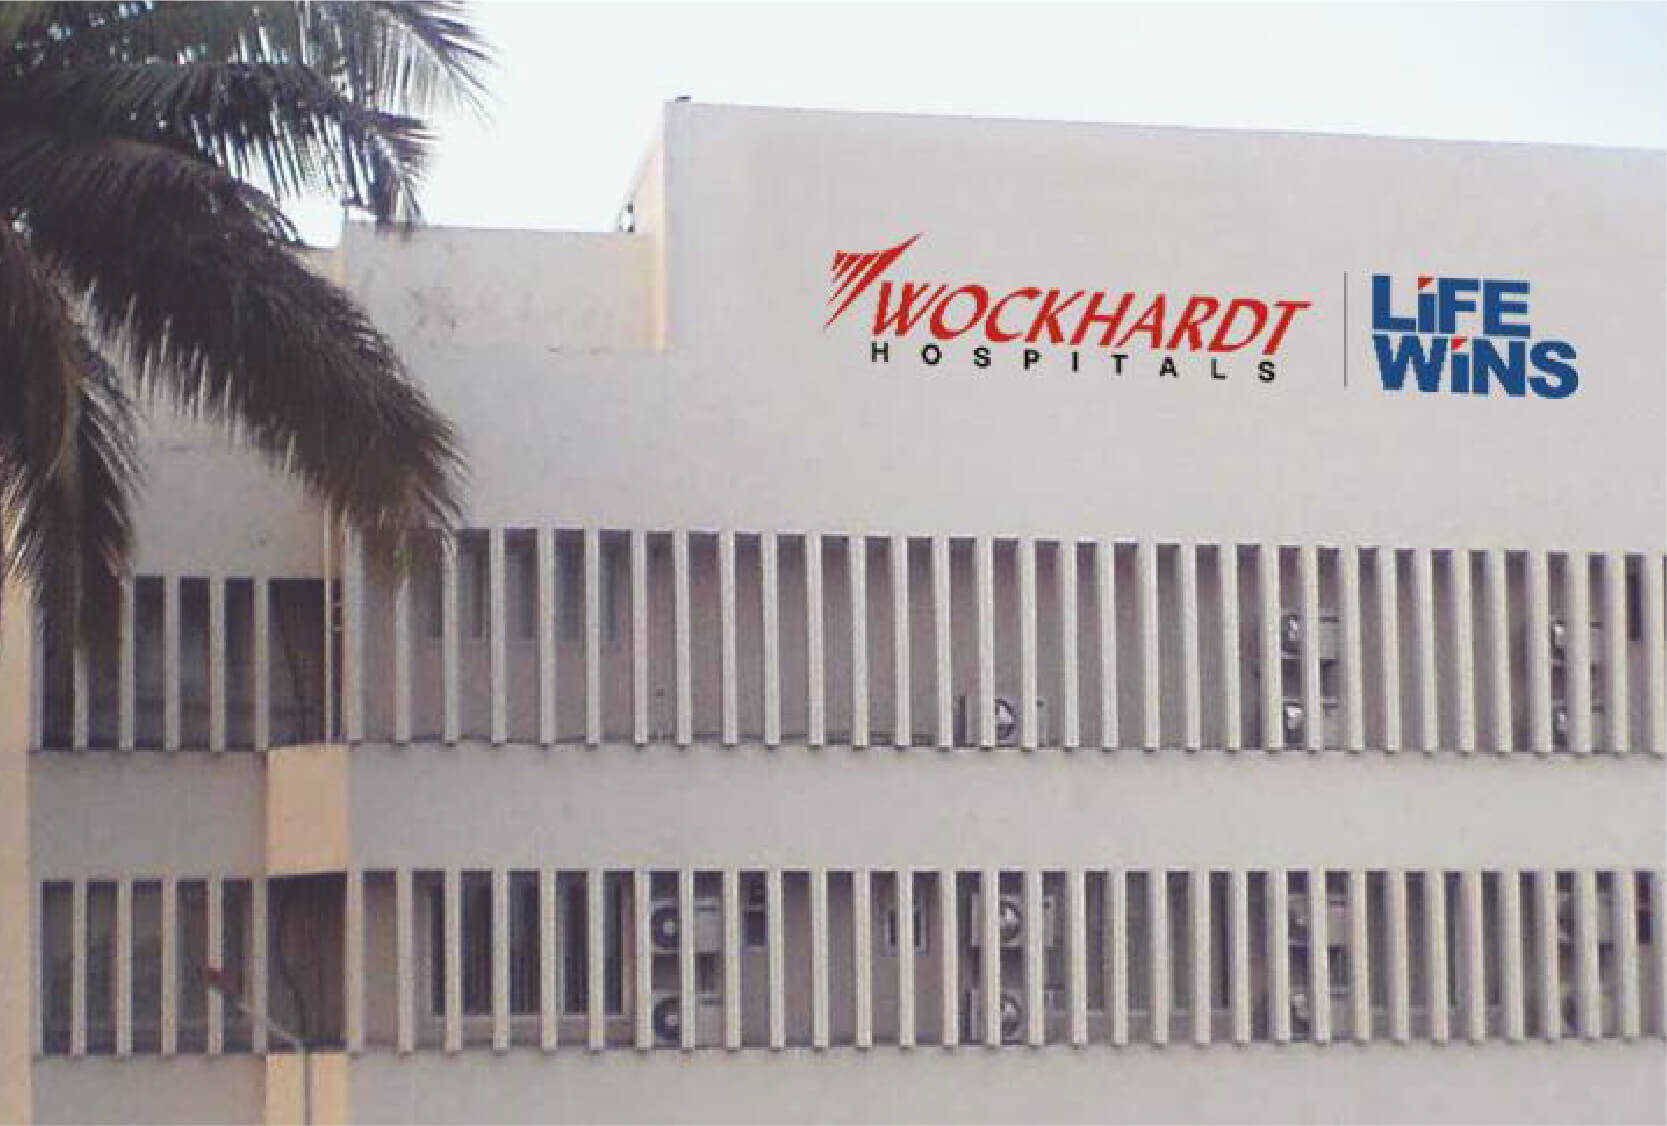 Wockhardt Super Specialty Hospital Mira Road, Mumbai